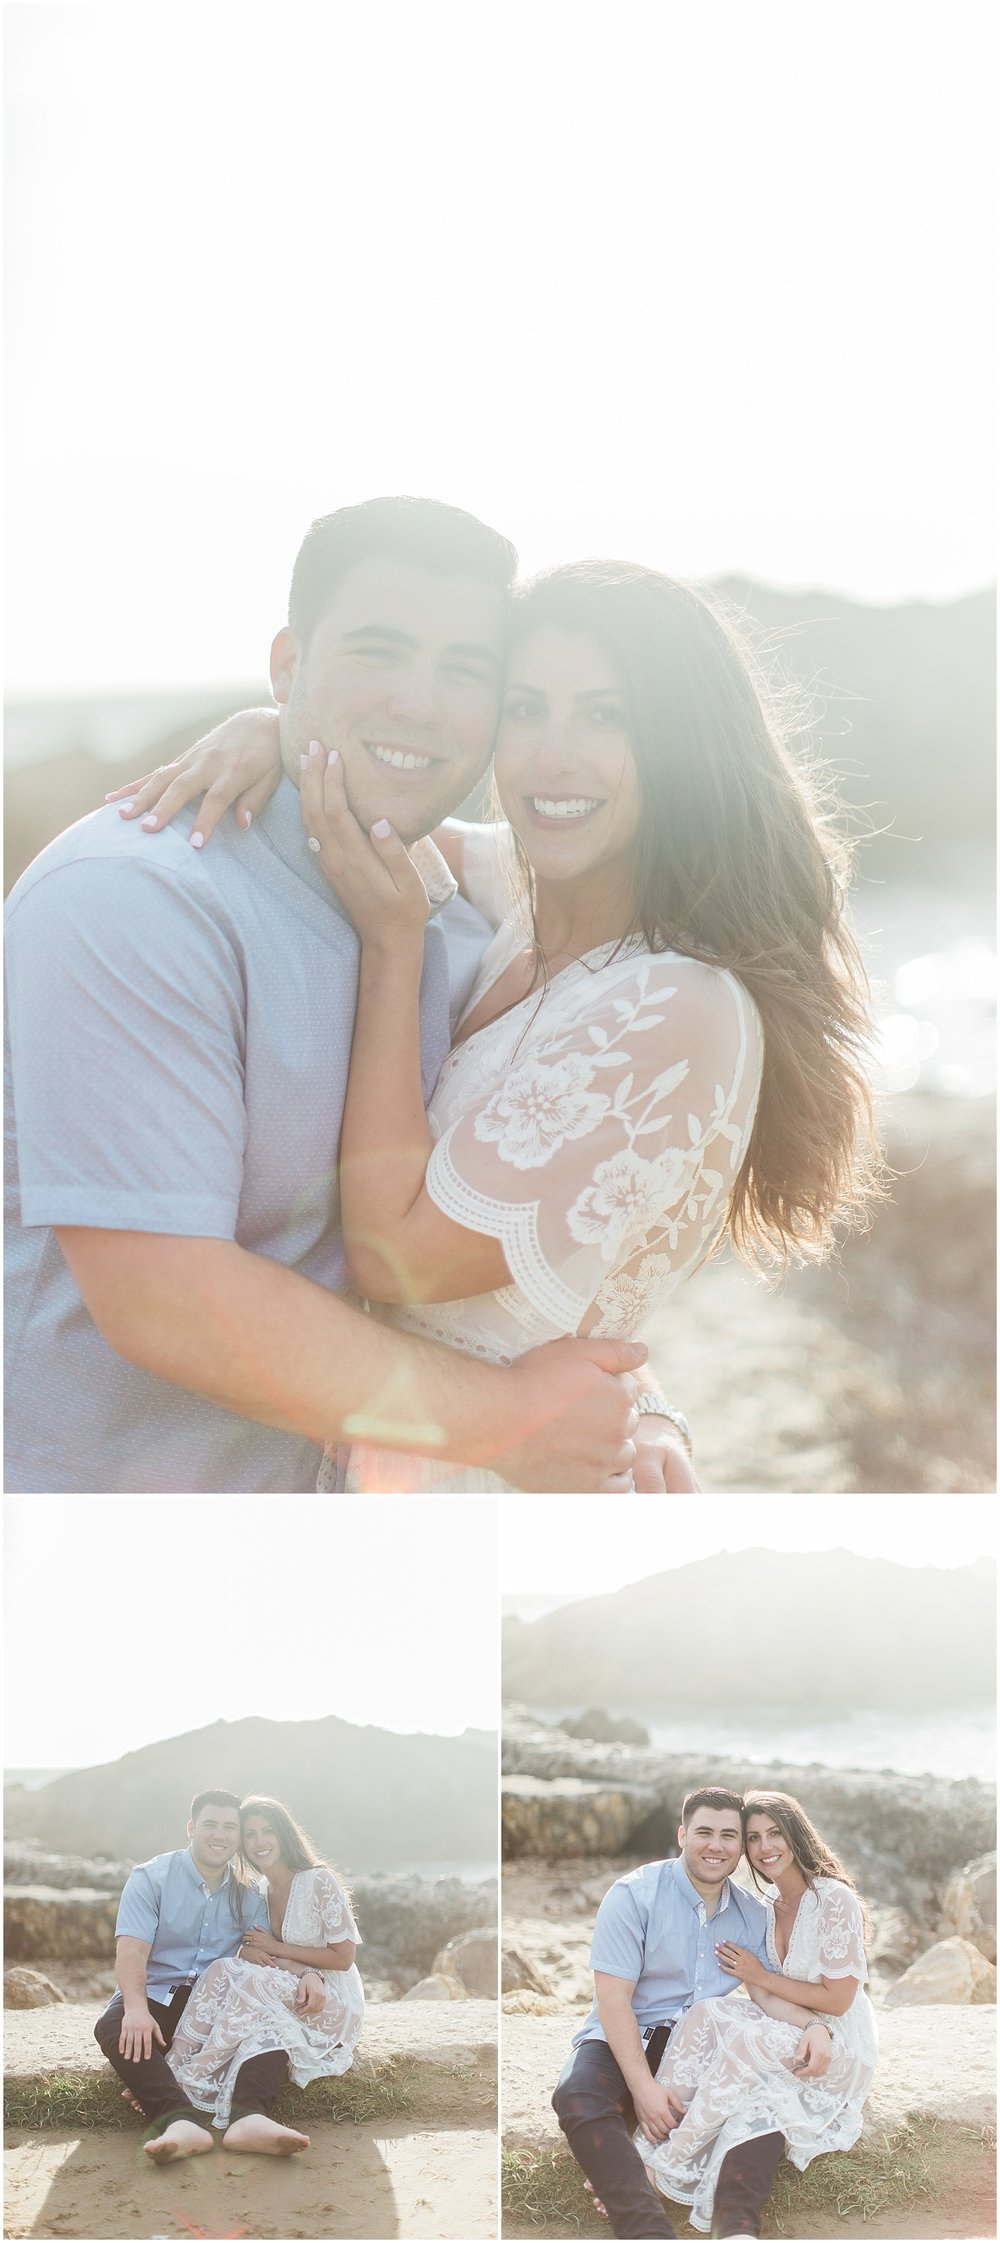 Ashley Burns Photography || Lifestyle, Wedding, and Branding Photographer